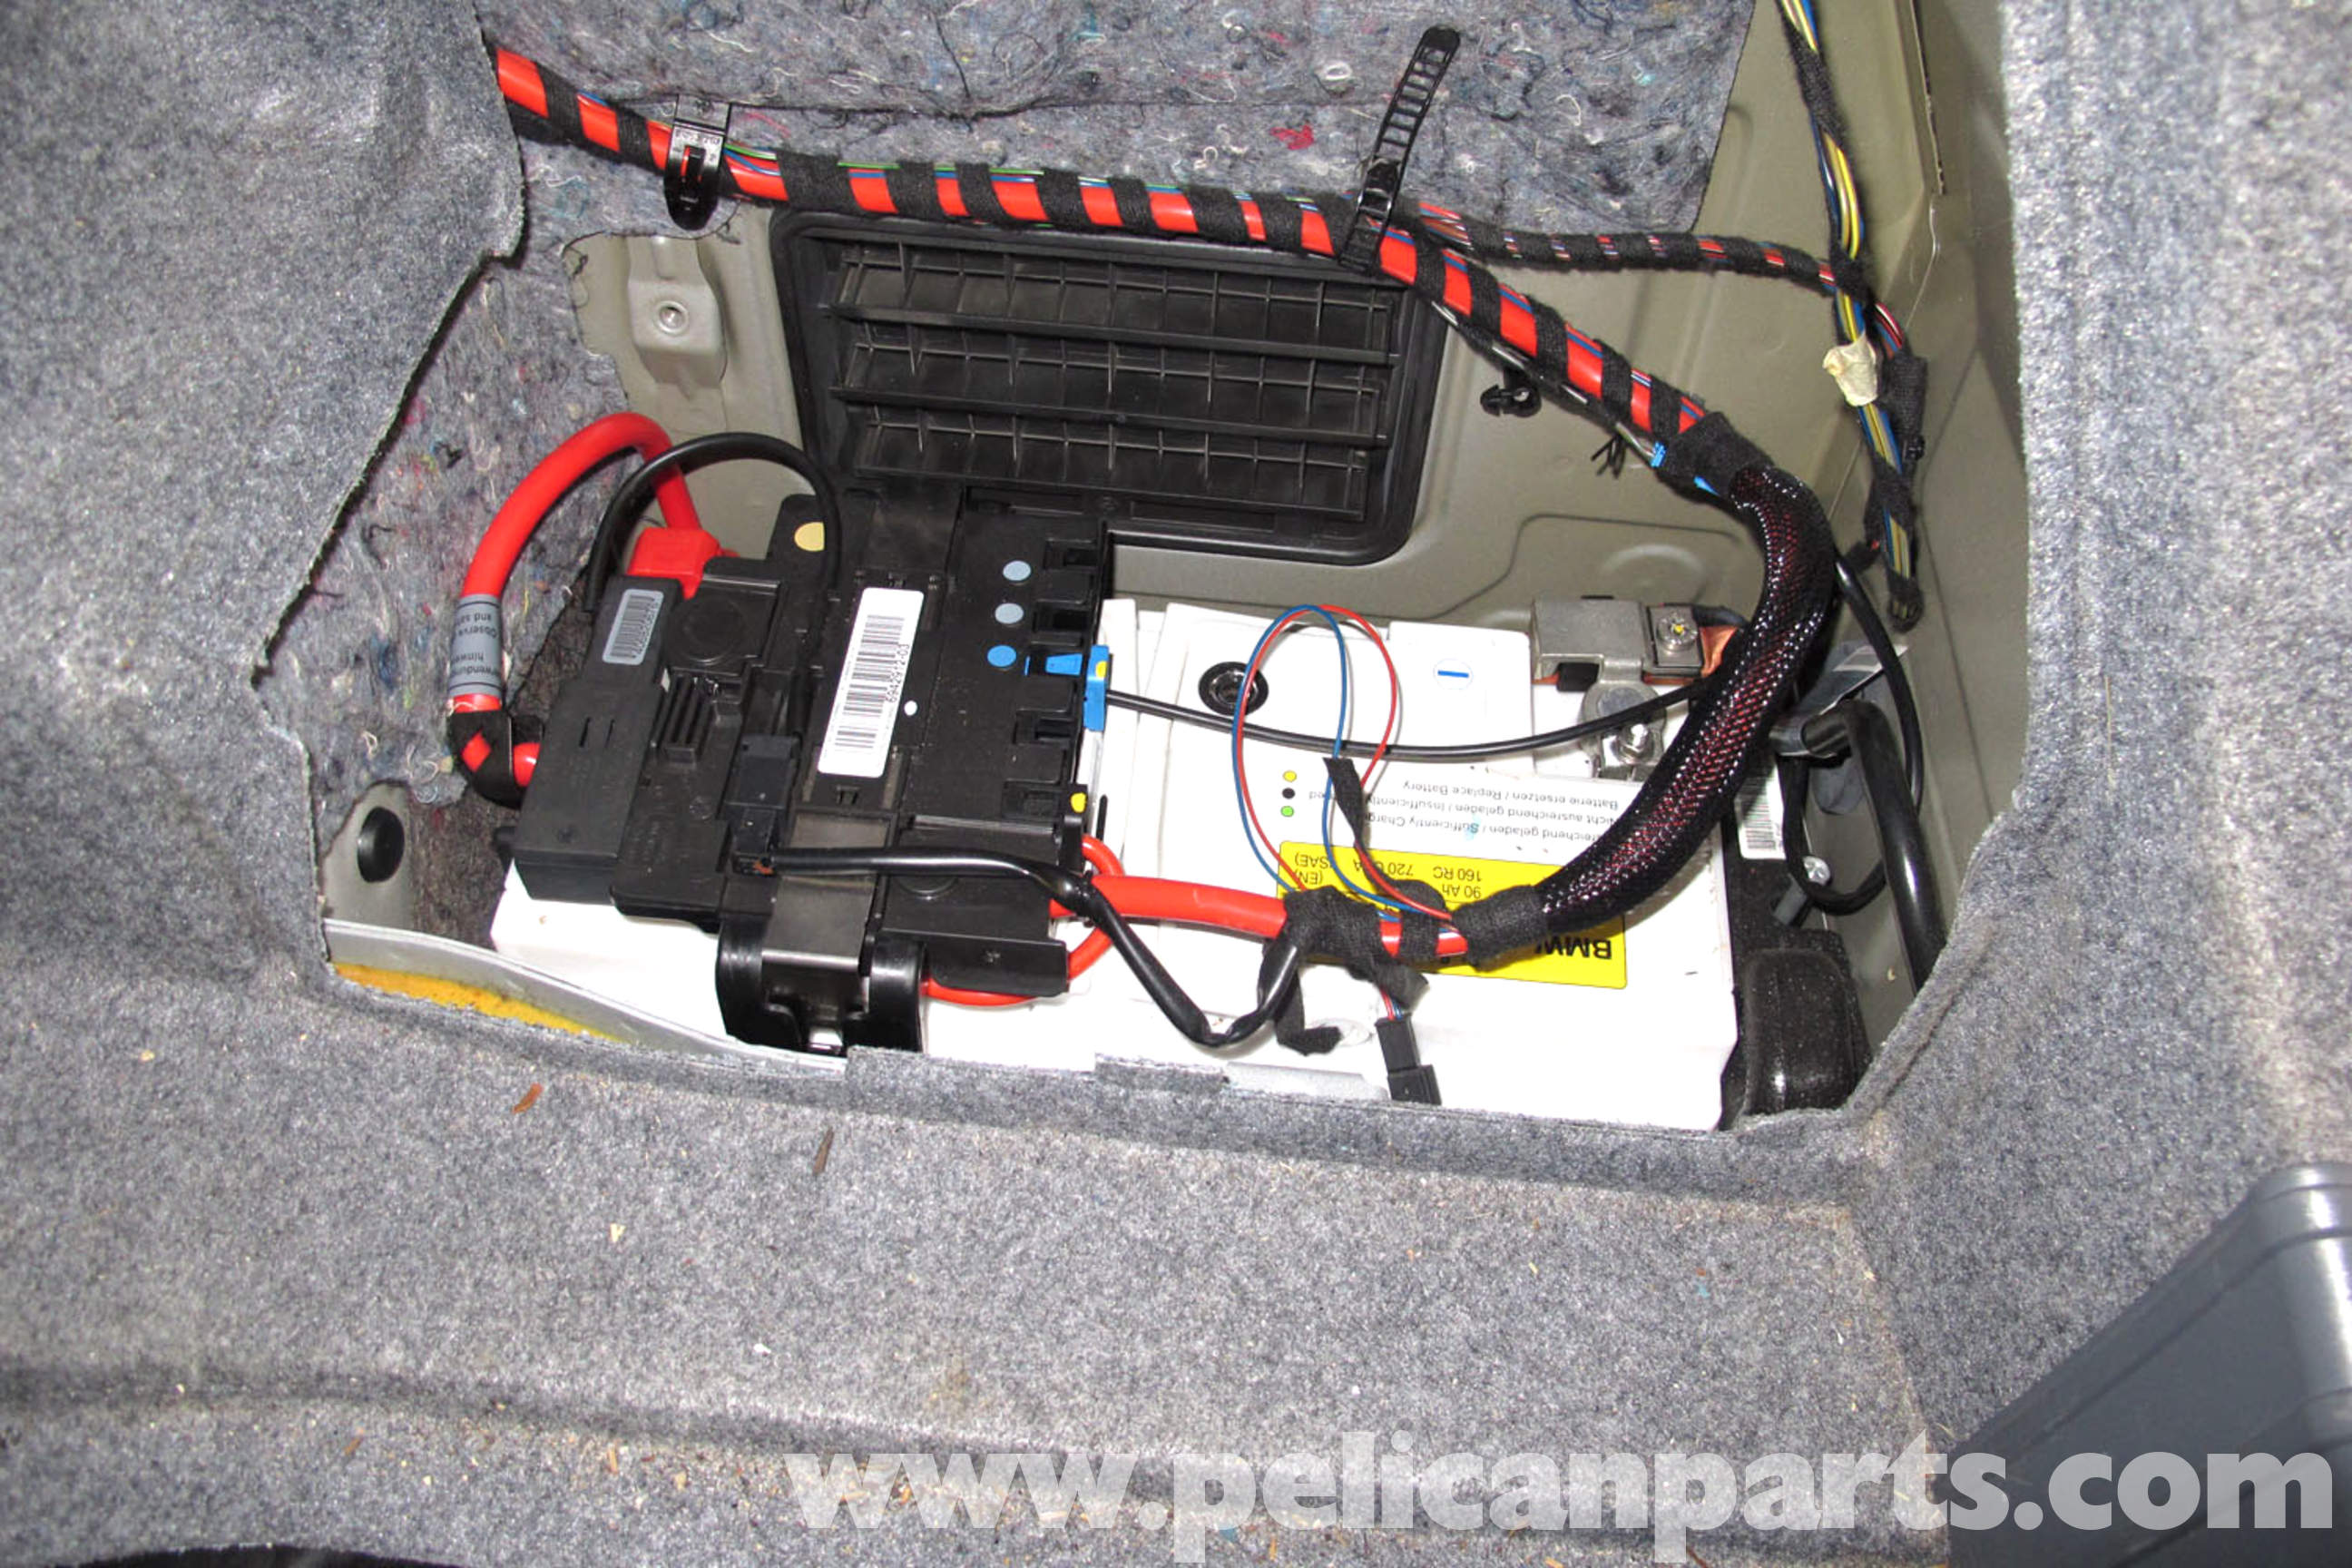 2006 E90 330i Fuse Box Diagram Wiring Portal 08 328i Bmw Battery Replacement E91 E92 E93 Pelican Parts Diy Rh Pelicanparts Com 330ci 2008 328xi